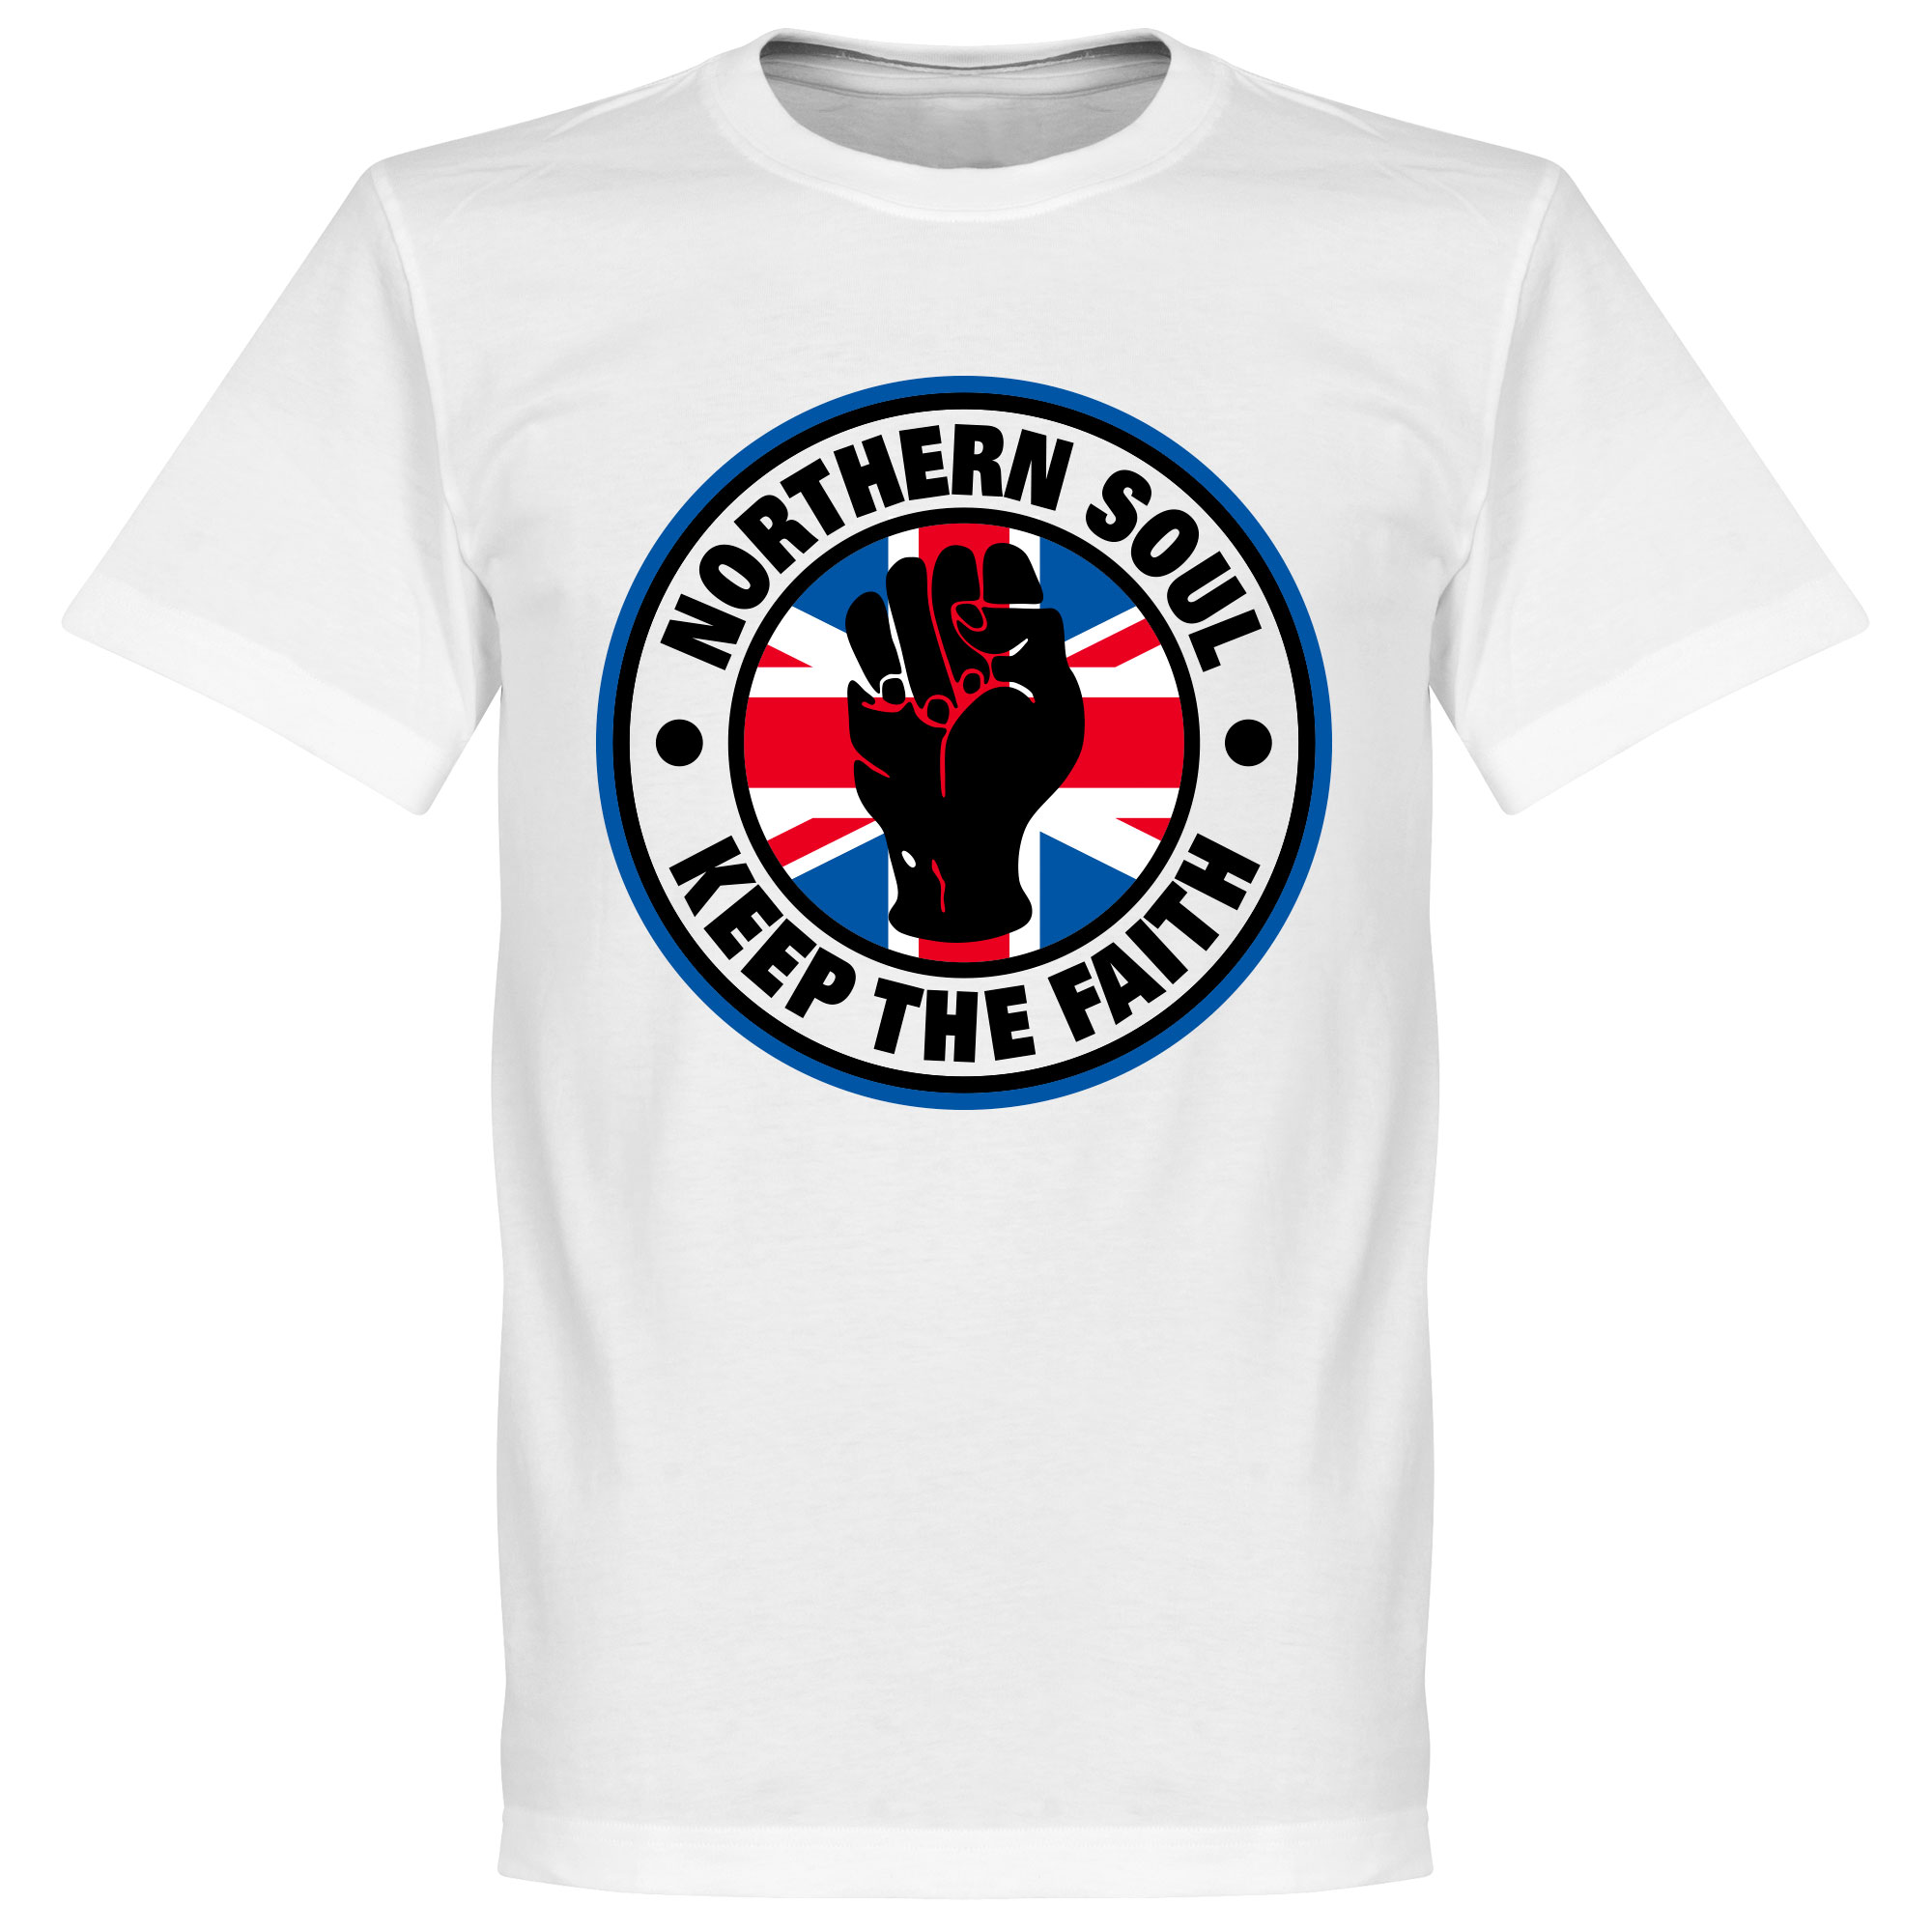 Northern Soul Union Flag Tee - White - XXXXL